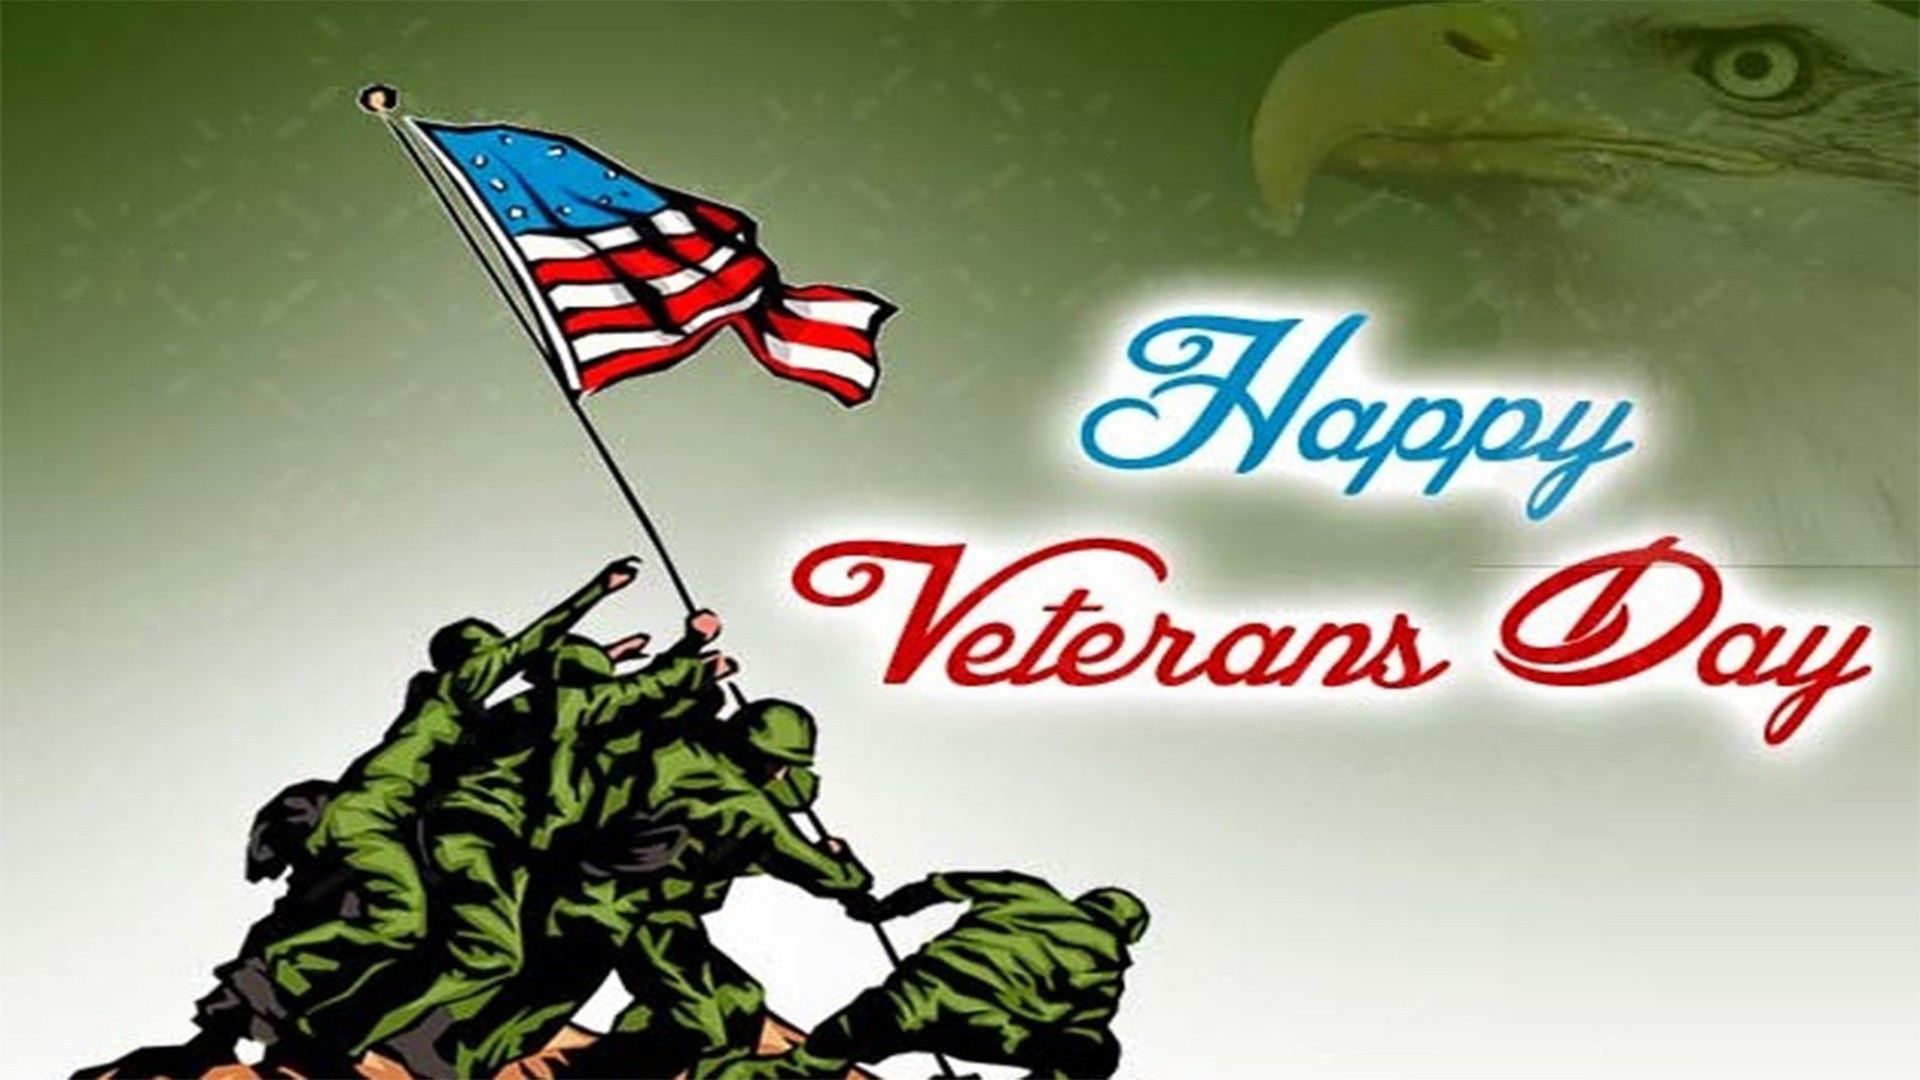 1920x1080 Happy Veterans Day 2017 HD Images & Pictures